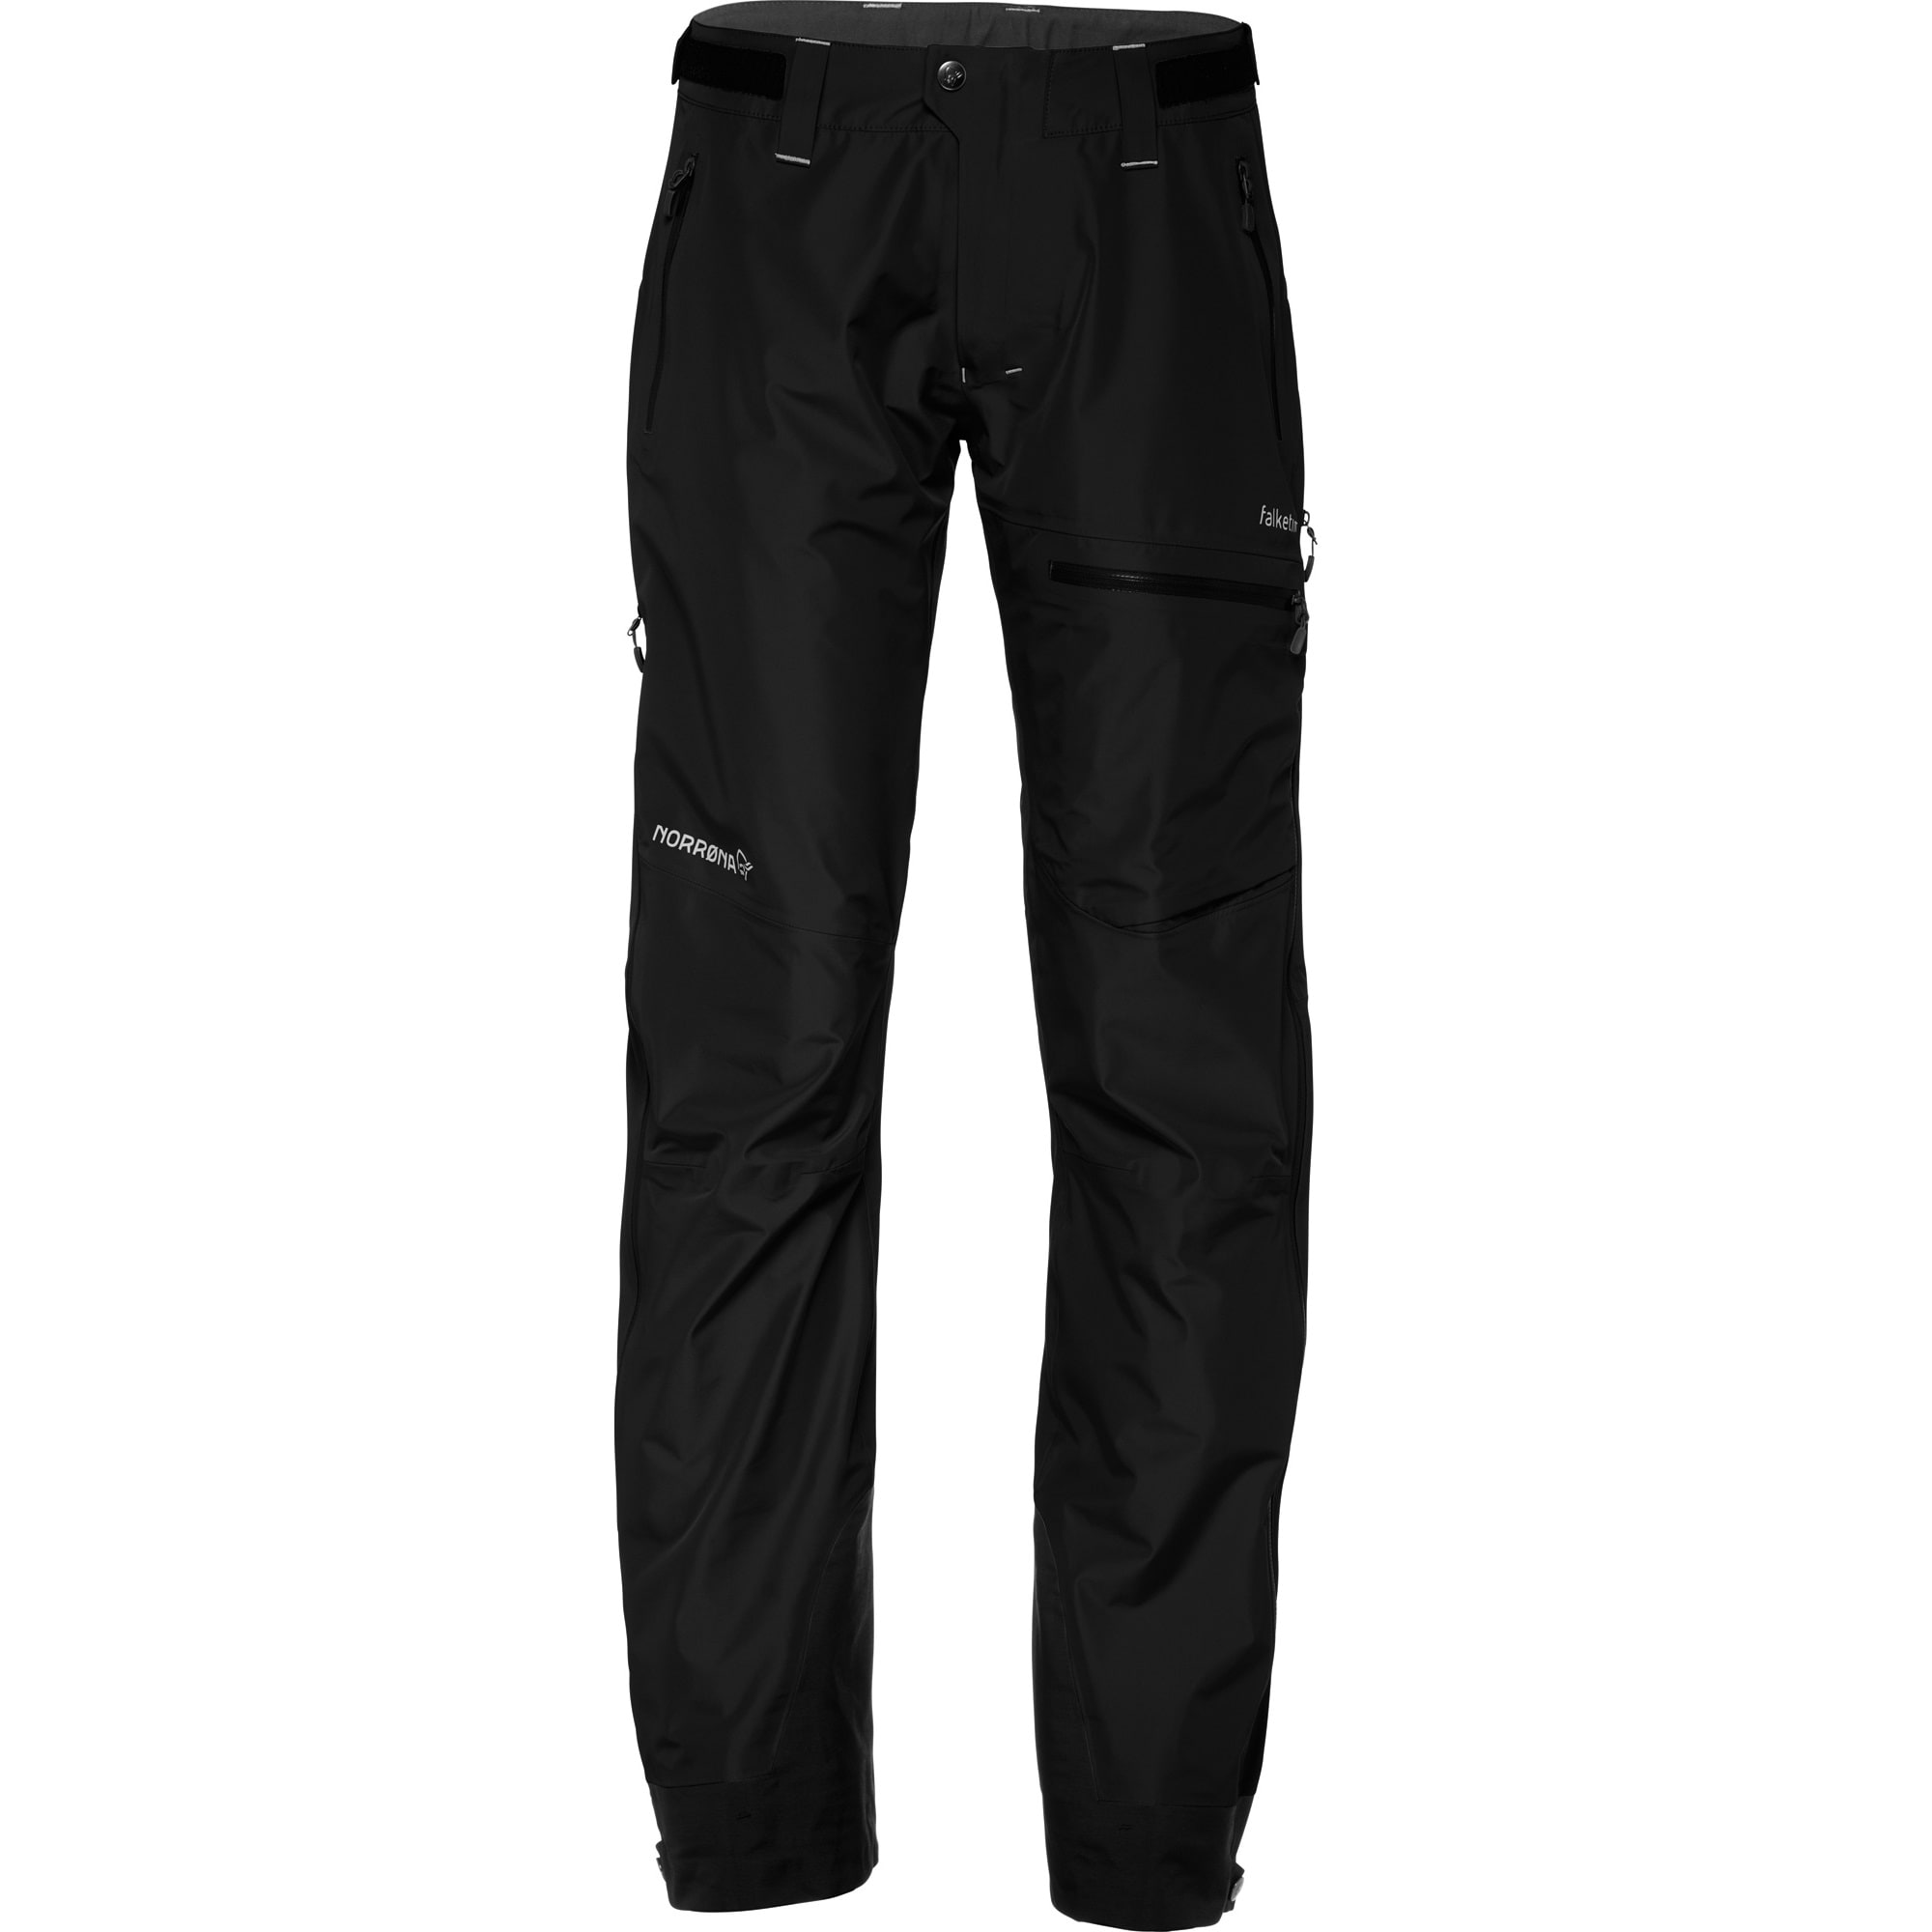 309586b7 Lofoten Gore-Tex Pants (W) L Jungle Fever finns på PricePi.com.